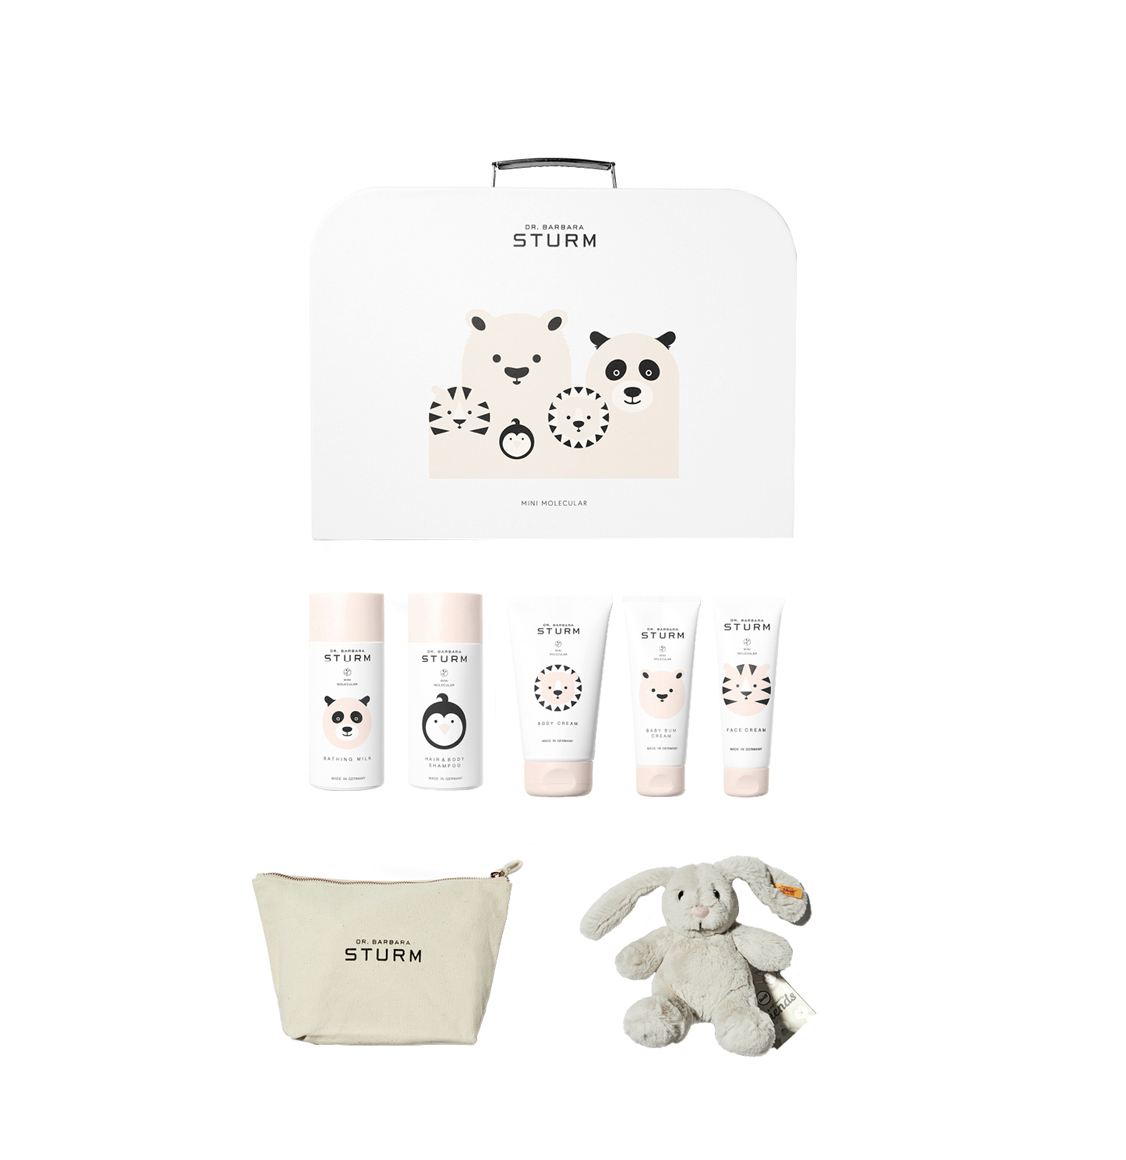 Dr. Barbara Sturm Baby And Kids Set Face Cream 50ml Bathing Milk 150ml Hair And Body Shampoo 150ml Bum Cream 75ml Body Cream 150ml Bunny Pouch